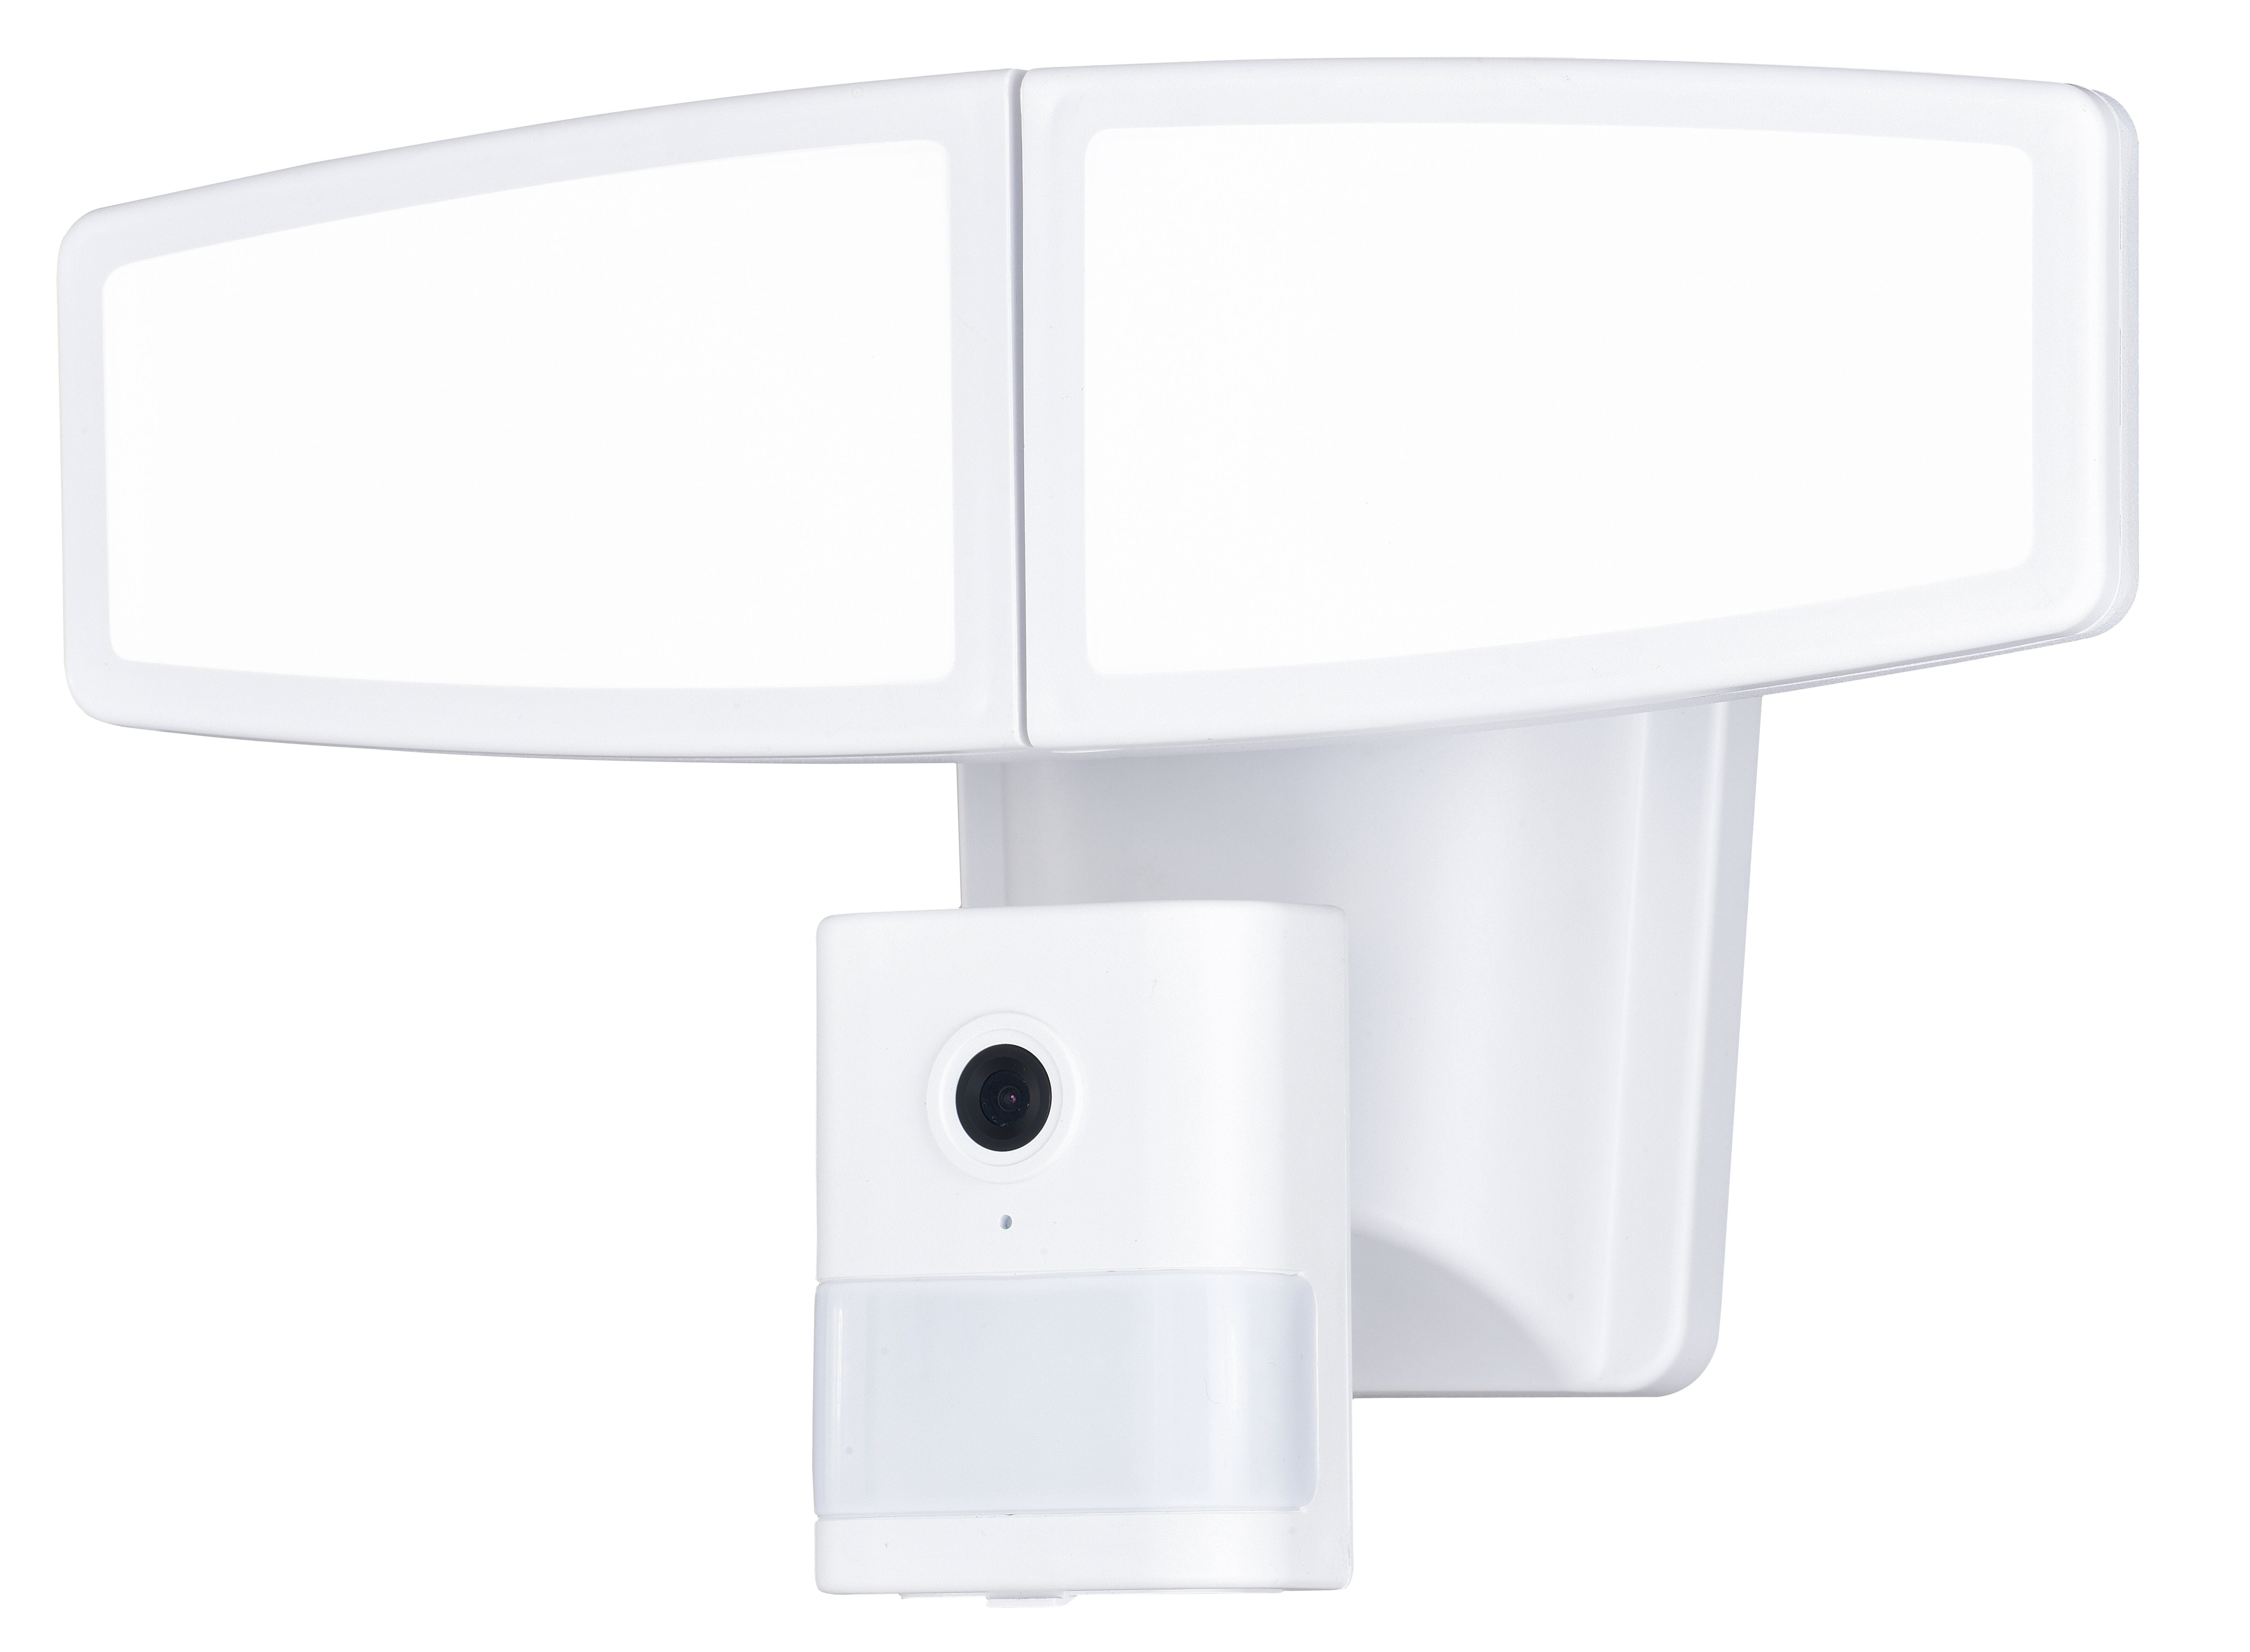 Higgston Wi-Fi Camera LED Dusk to Dawn Outdoor Floodlight with Motion Sensor